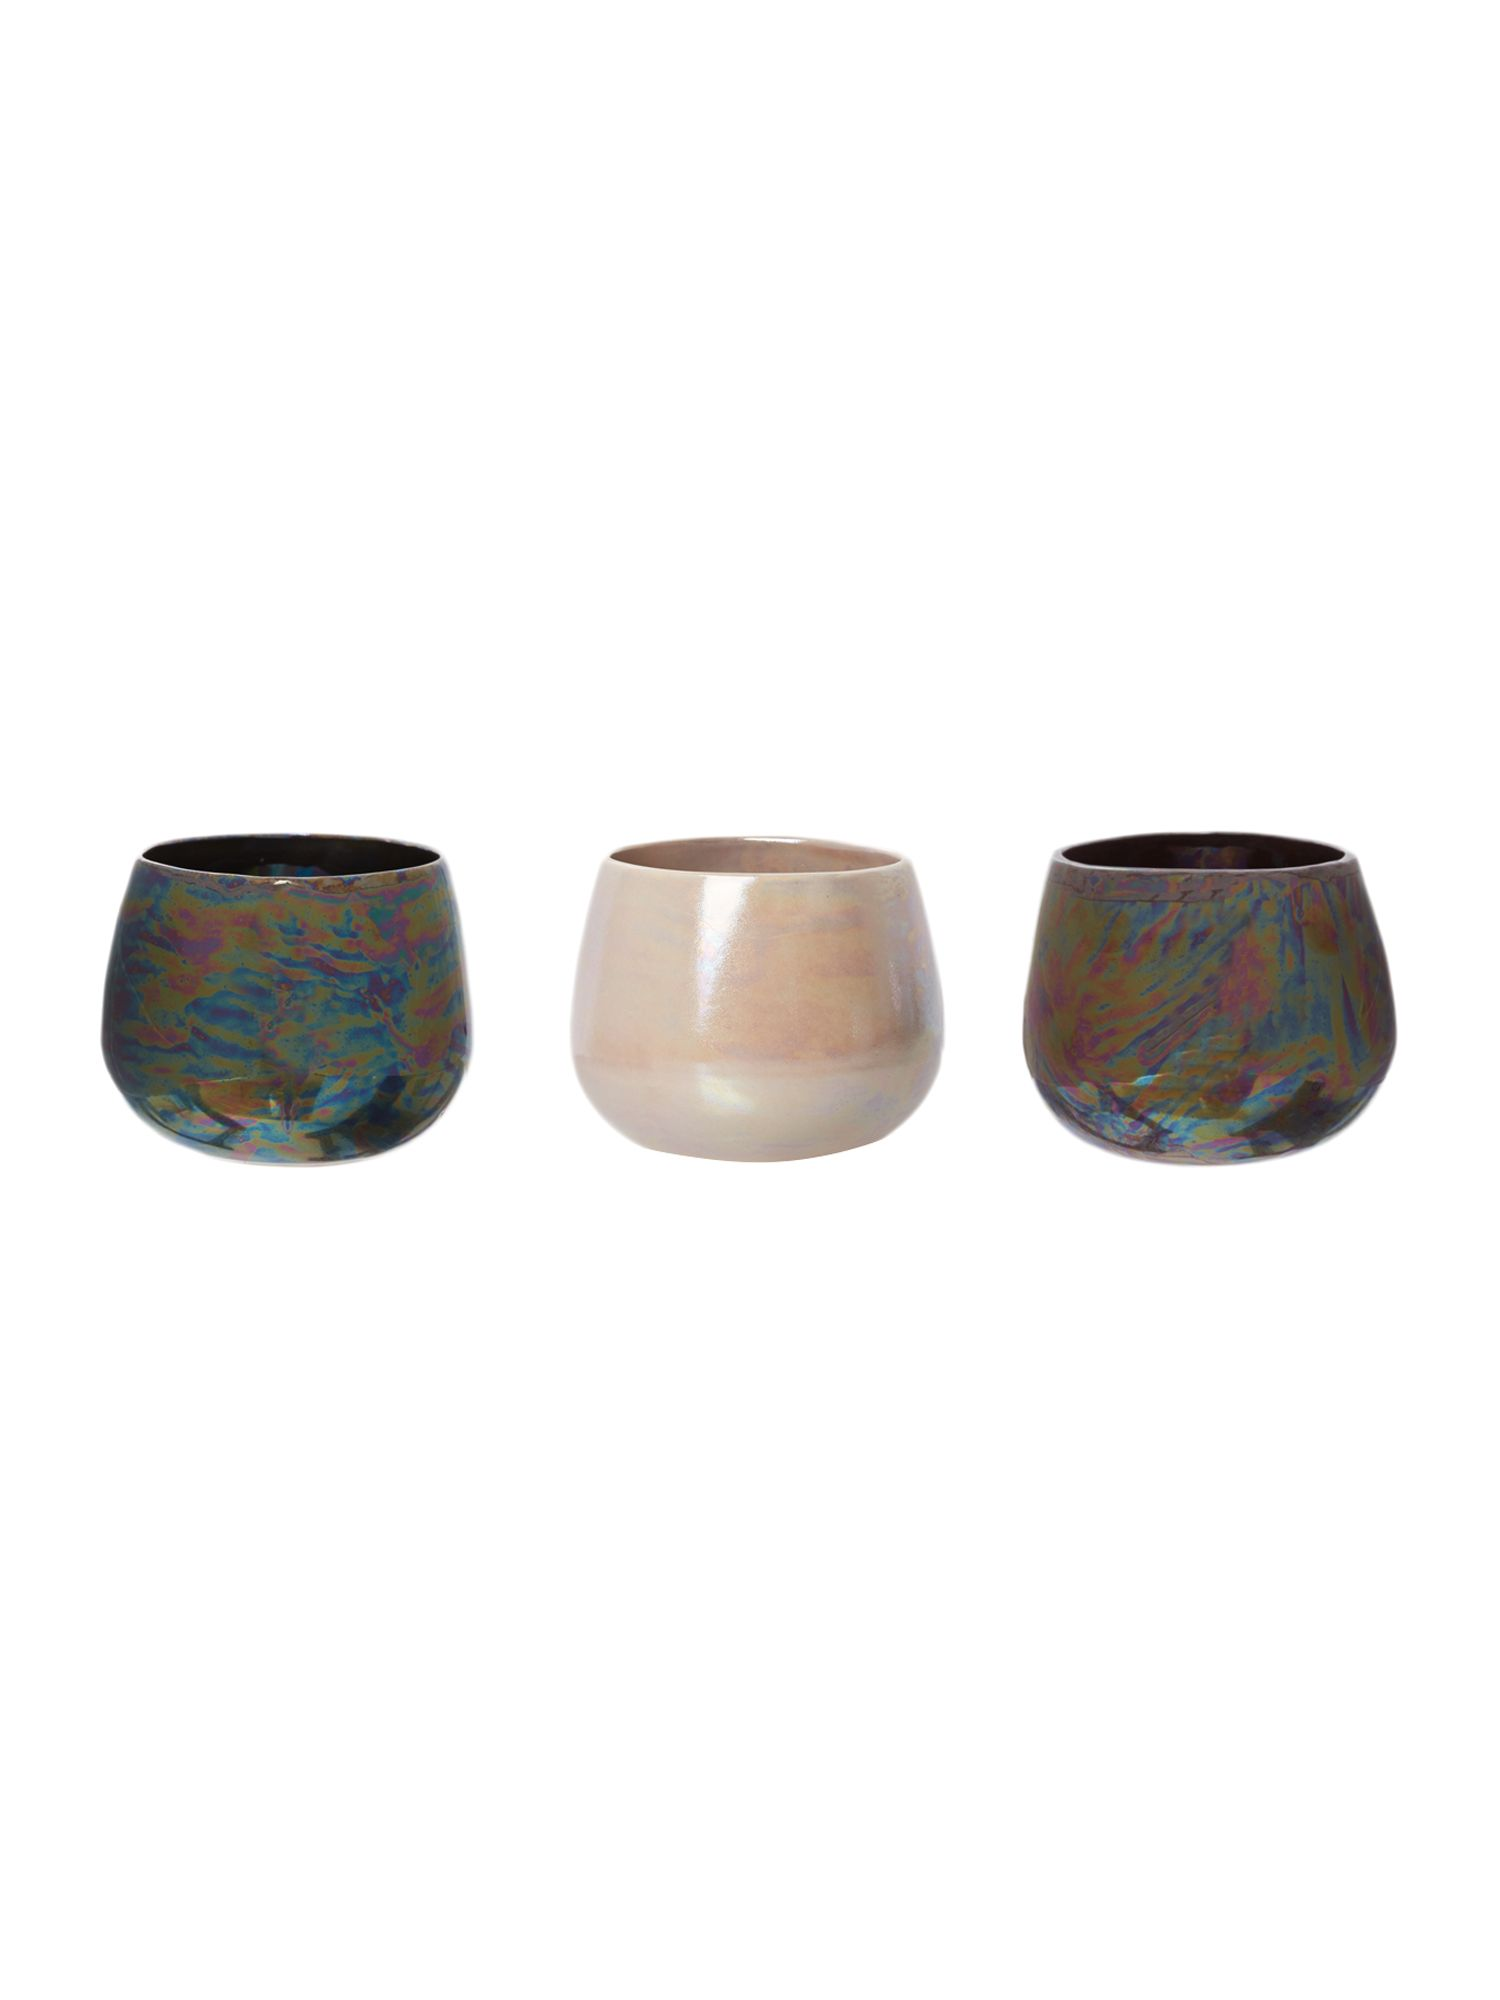 Lustre ceramic tealight holders